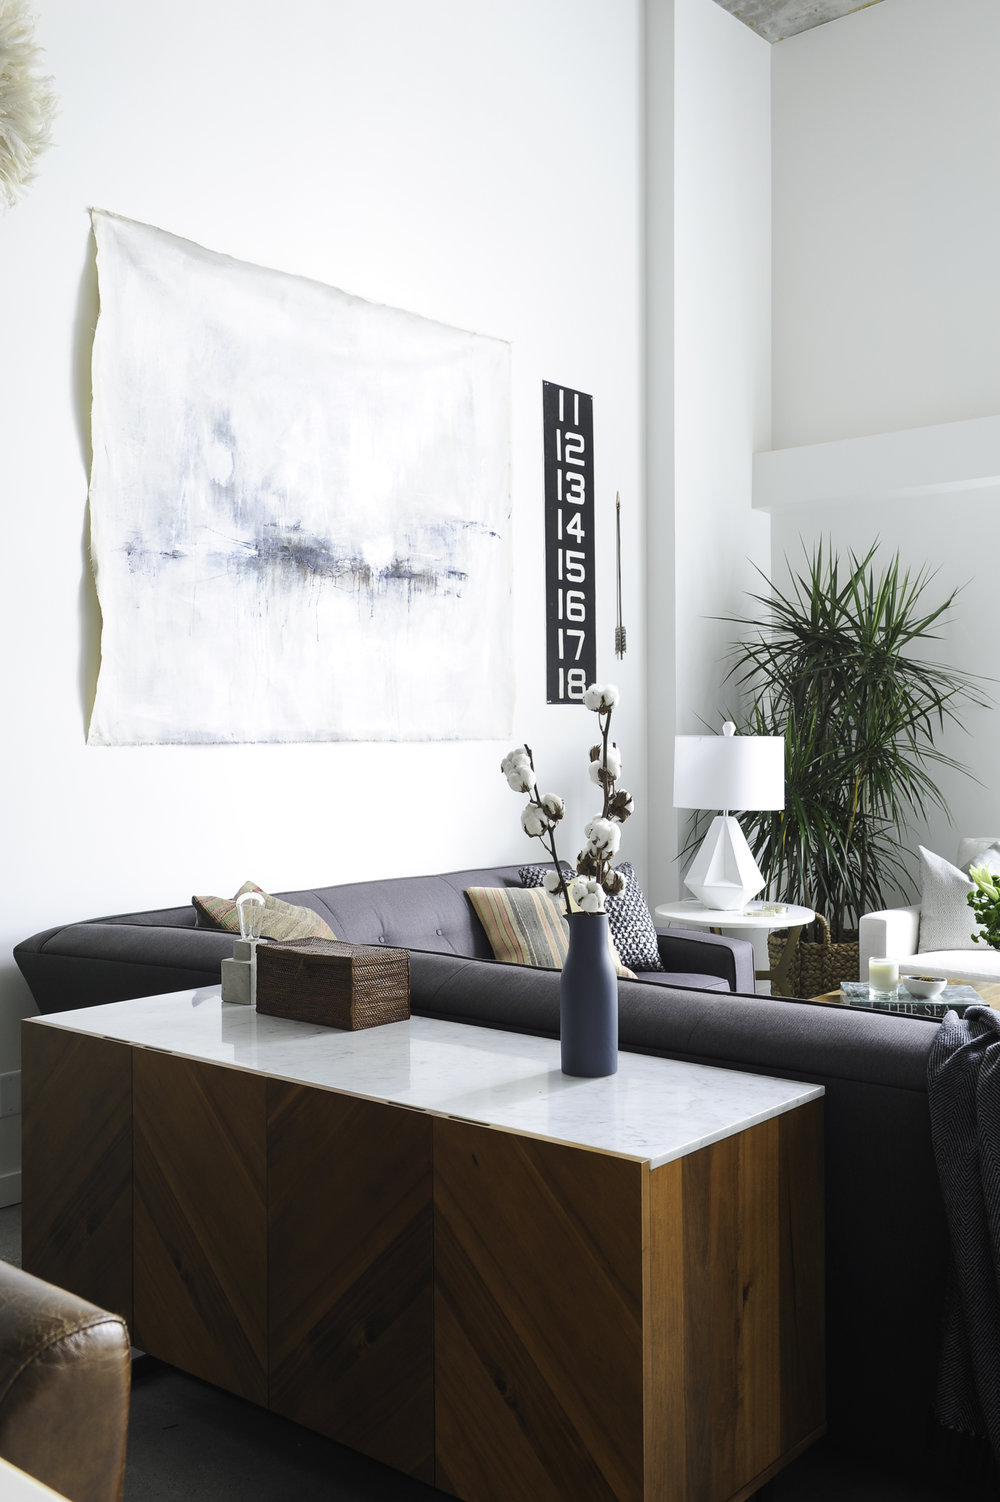 The sunny living room of the Seymour Street loft including a grey couch and teak furniture in downtown Vancouver, BC.